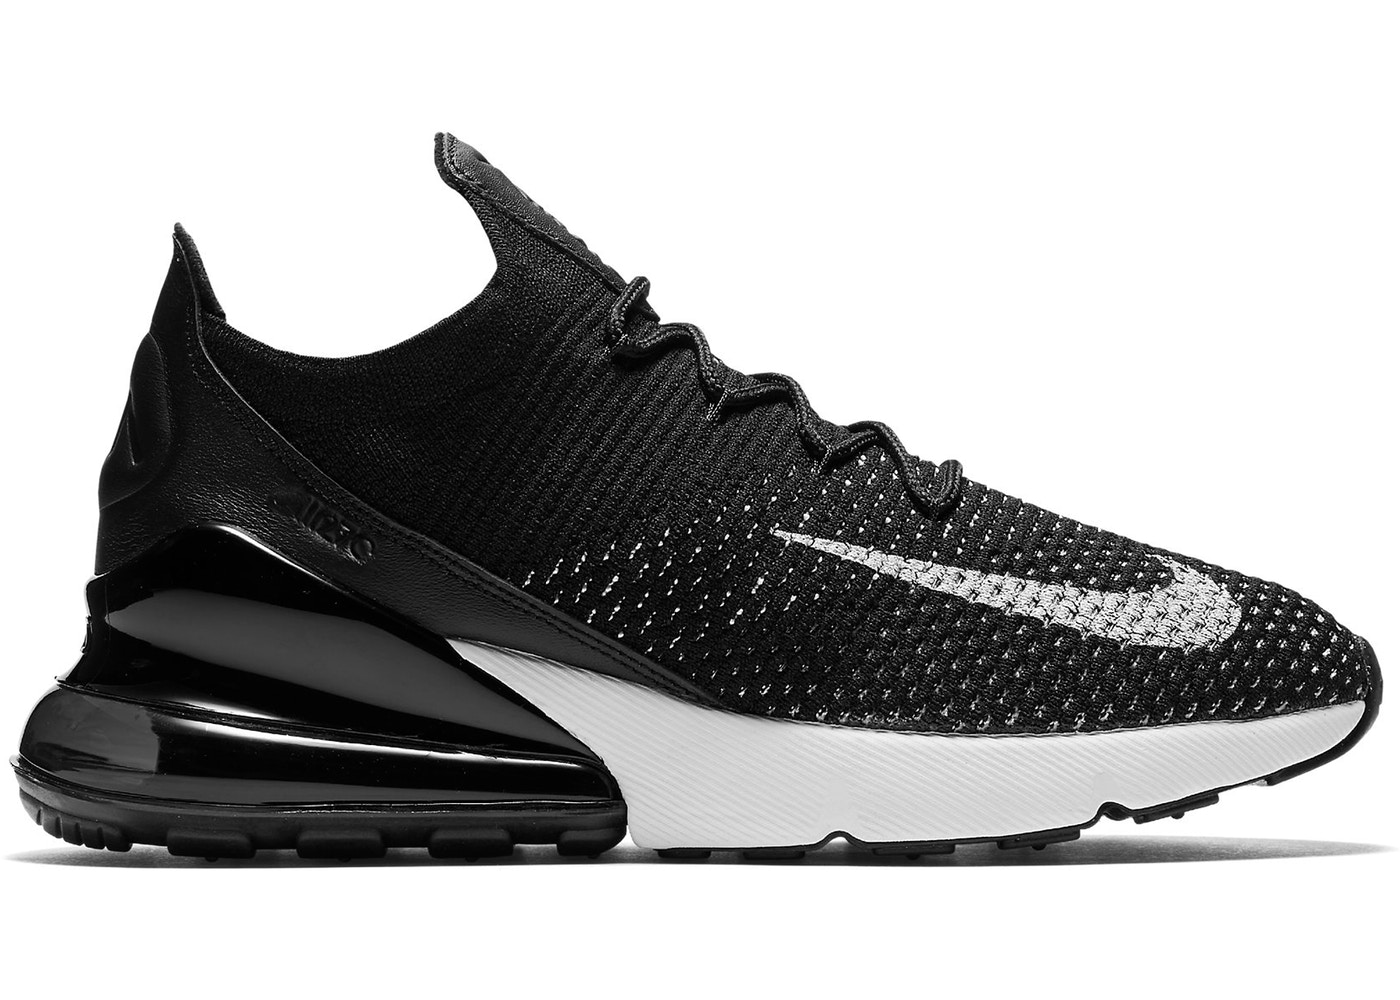 Nike Air Max 270 Flyknit BlackBlack White AH6803 001